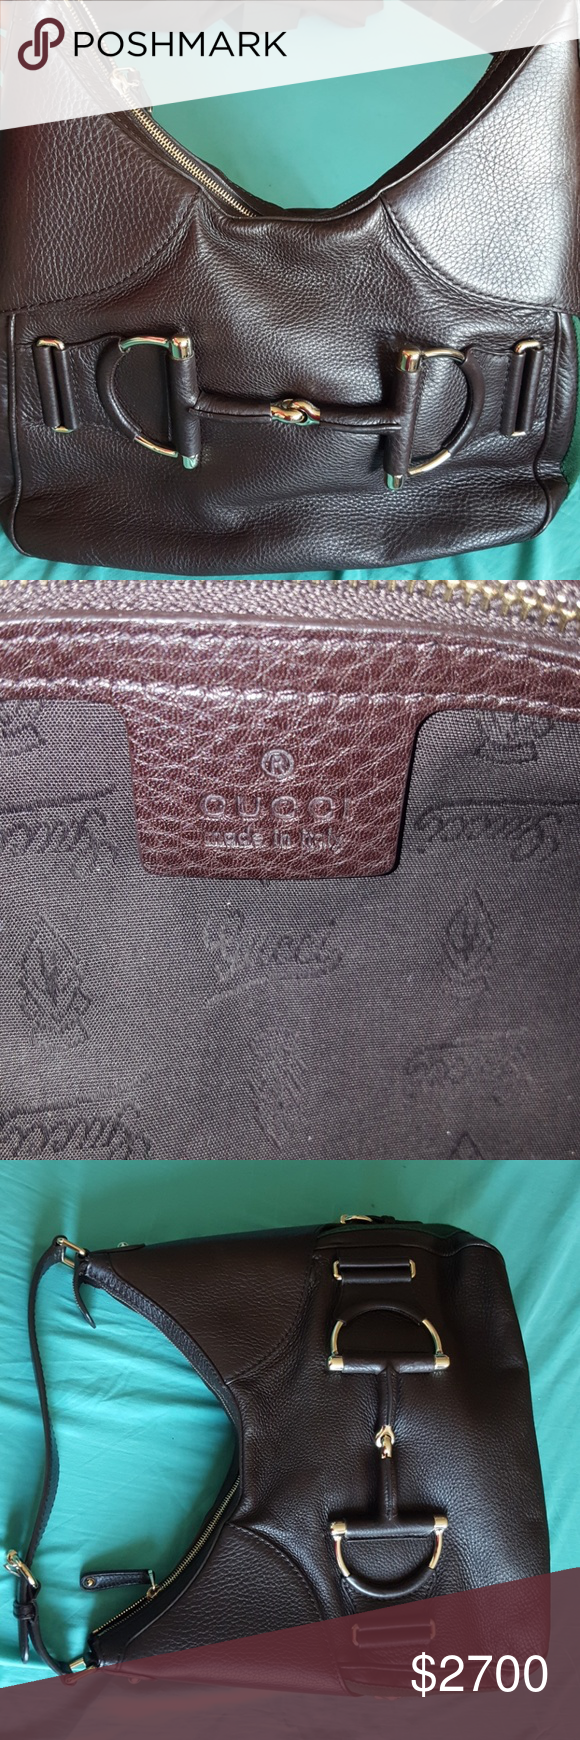 c45b30204676 AUTHENTIC Gucci Purse Unused. In brand-new condition. No flaws. 100%  Genuine Leather. Made in Italy. Small zipper inside. Box & original tags  not included. ...